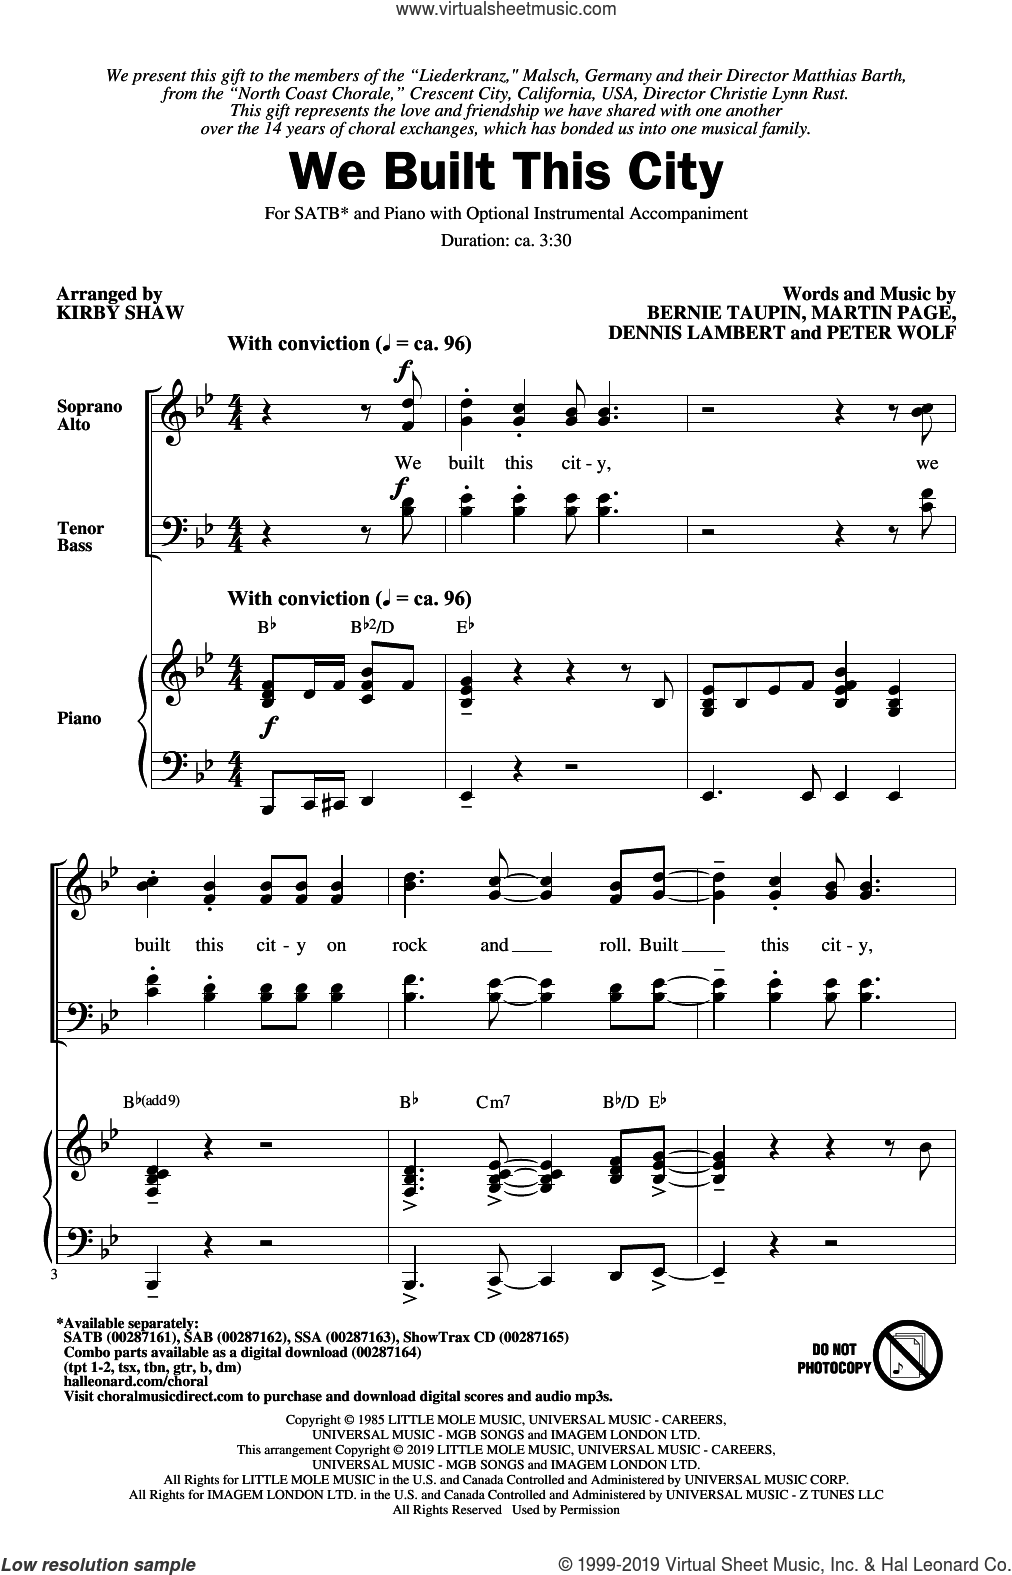 We Built This City (arr. Kirby Shaw) sheet music for choir (SATB: soprano, alto, tenor, bass) by Starship, Kirby Shaw, Bernie Taupin, Dennis Lambert, Martin George Page and Peter Wolf, intermediate skill level